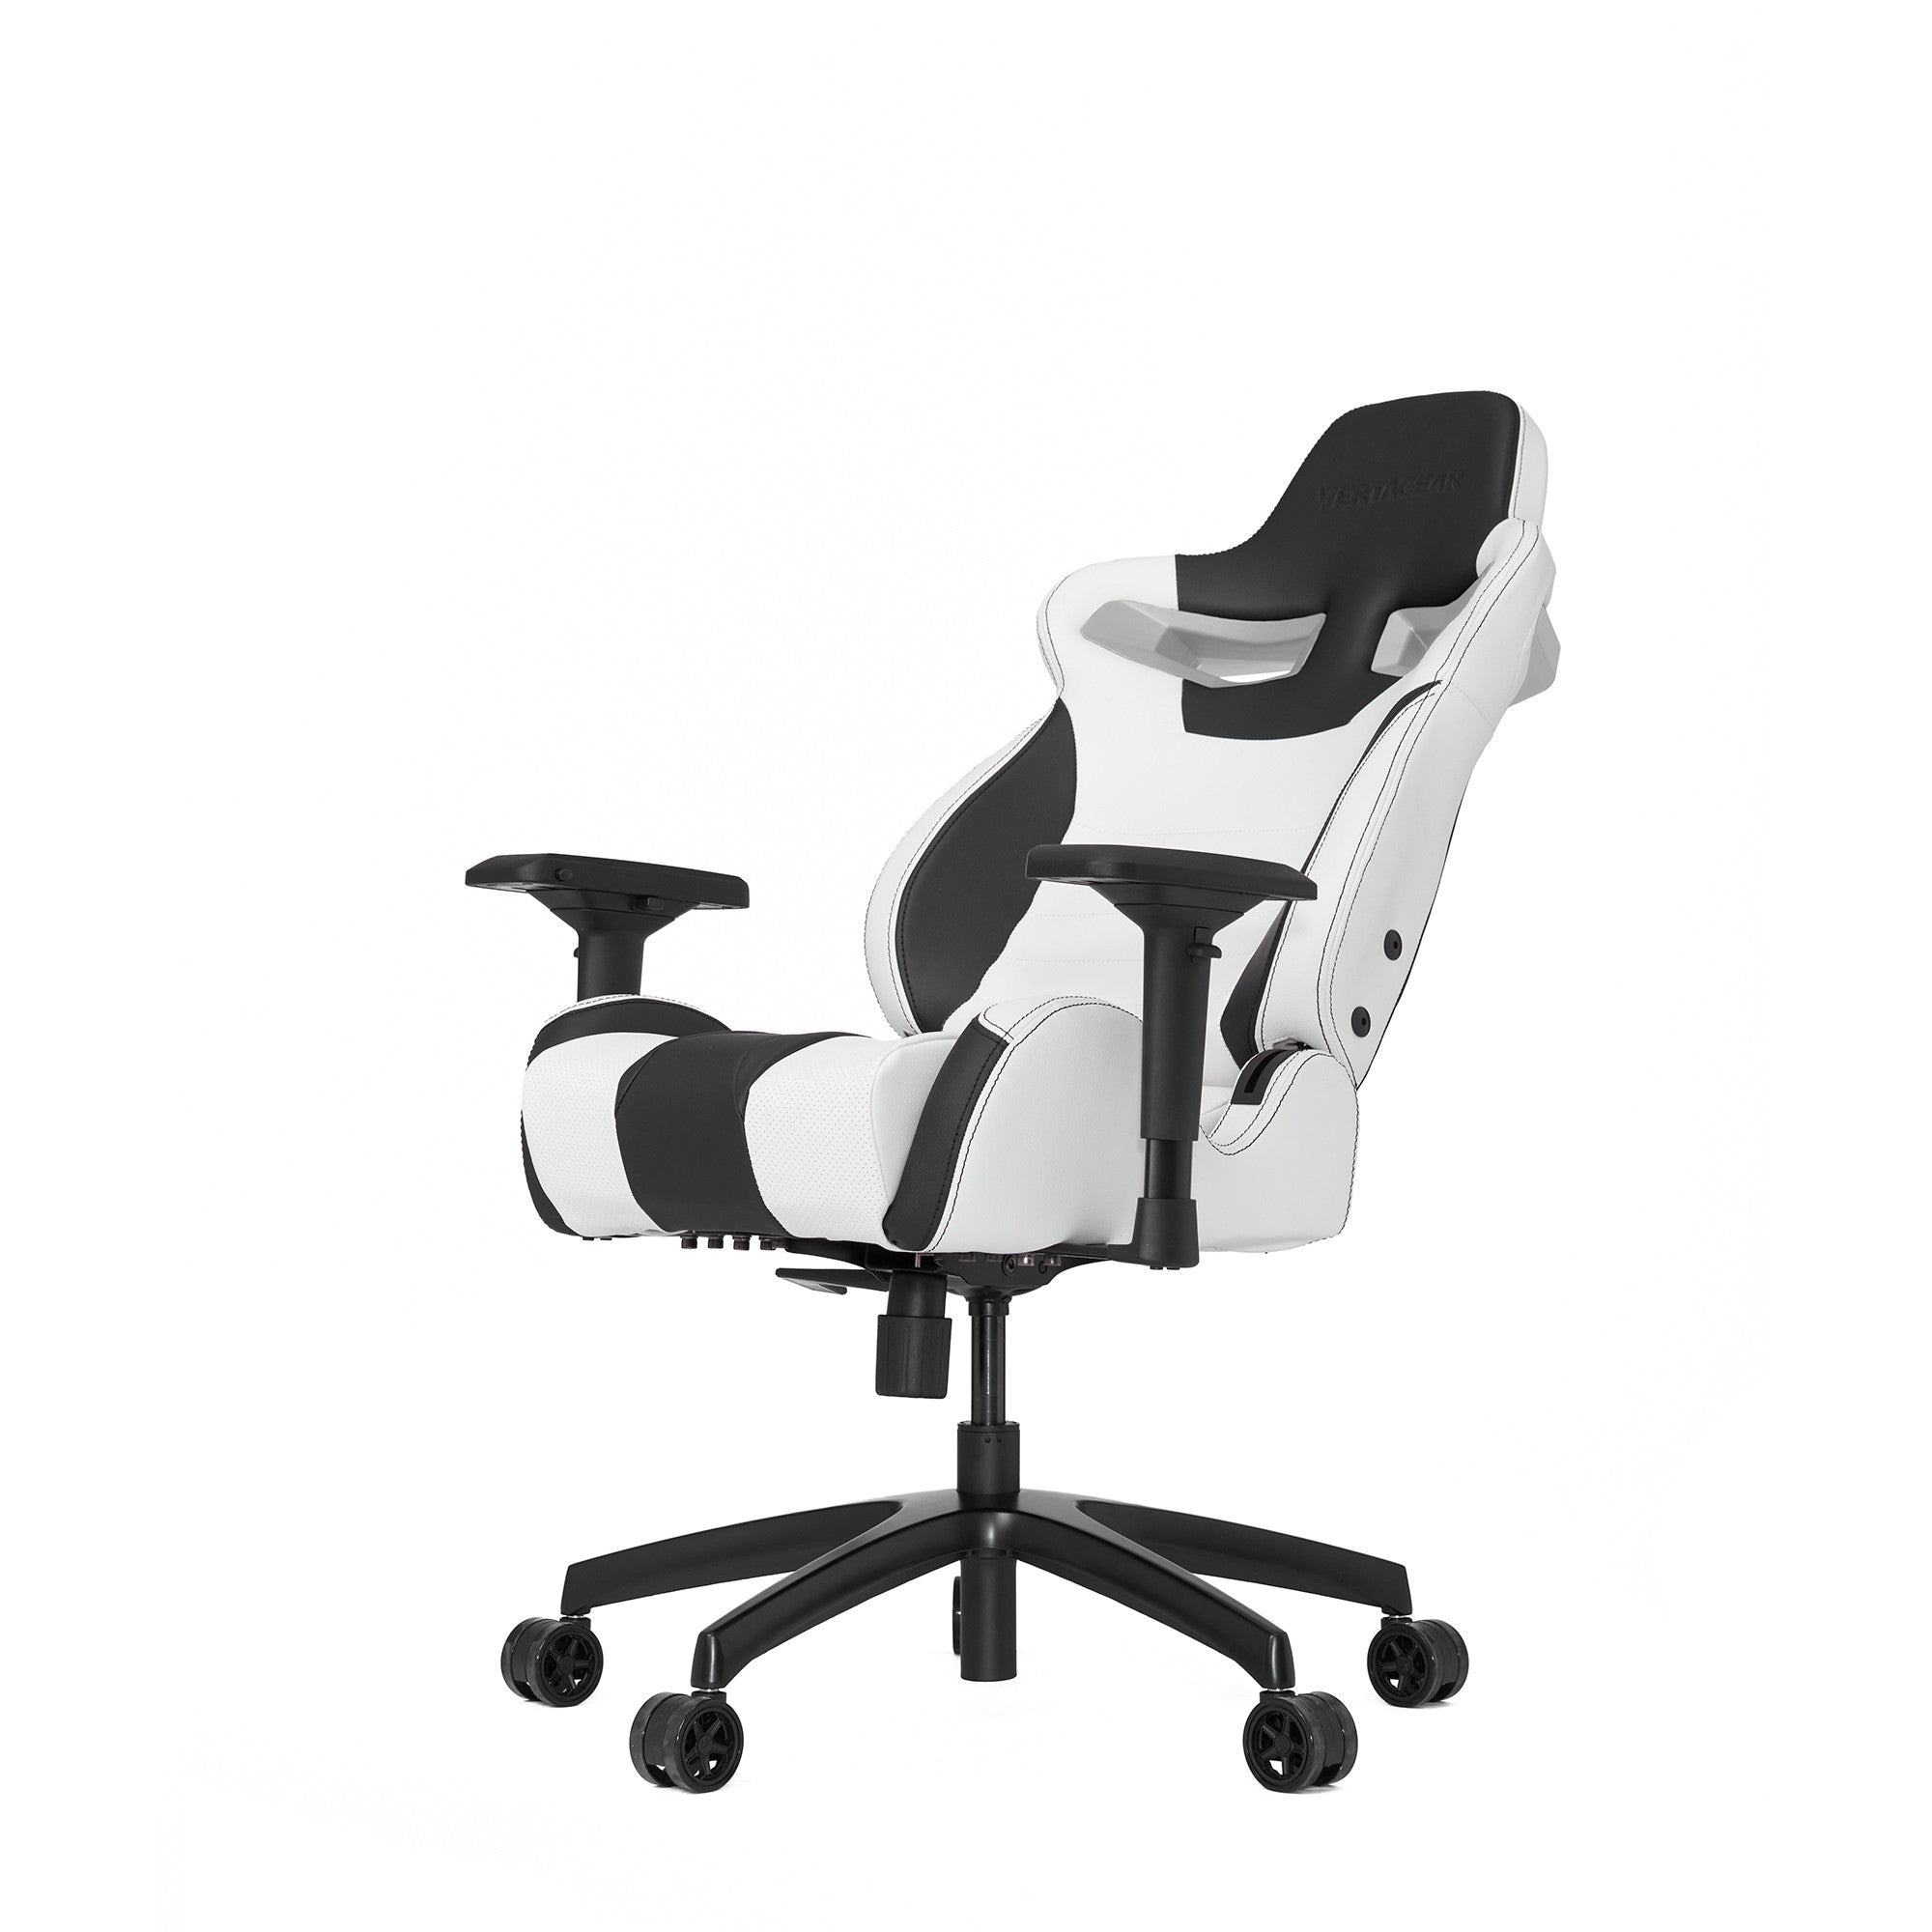 Terrific Vertagear S Line Sl4000 Racing Series Gaming Chair White Andrewgaddart Wooden Chair Designs For Living Room Andrewgaddartcom